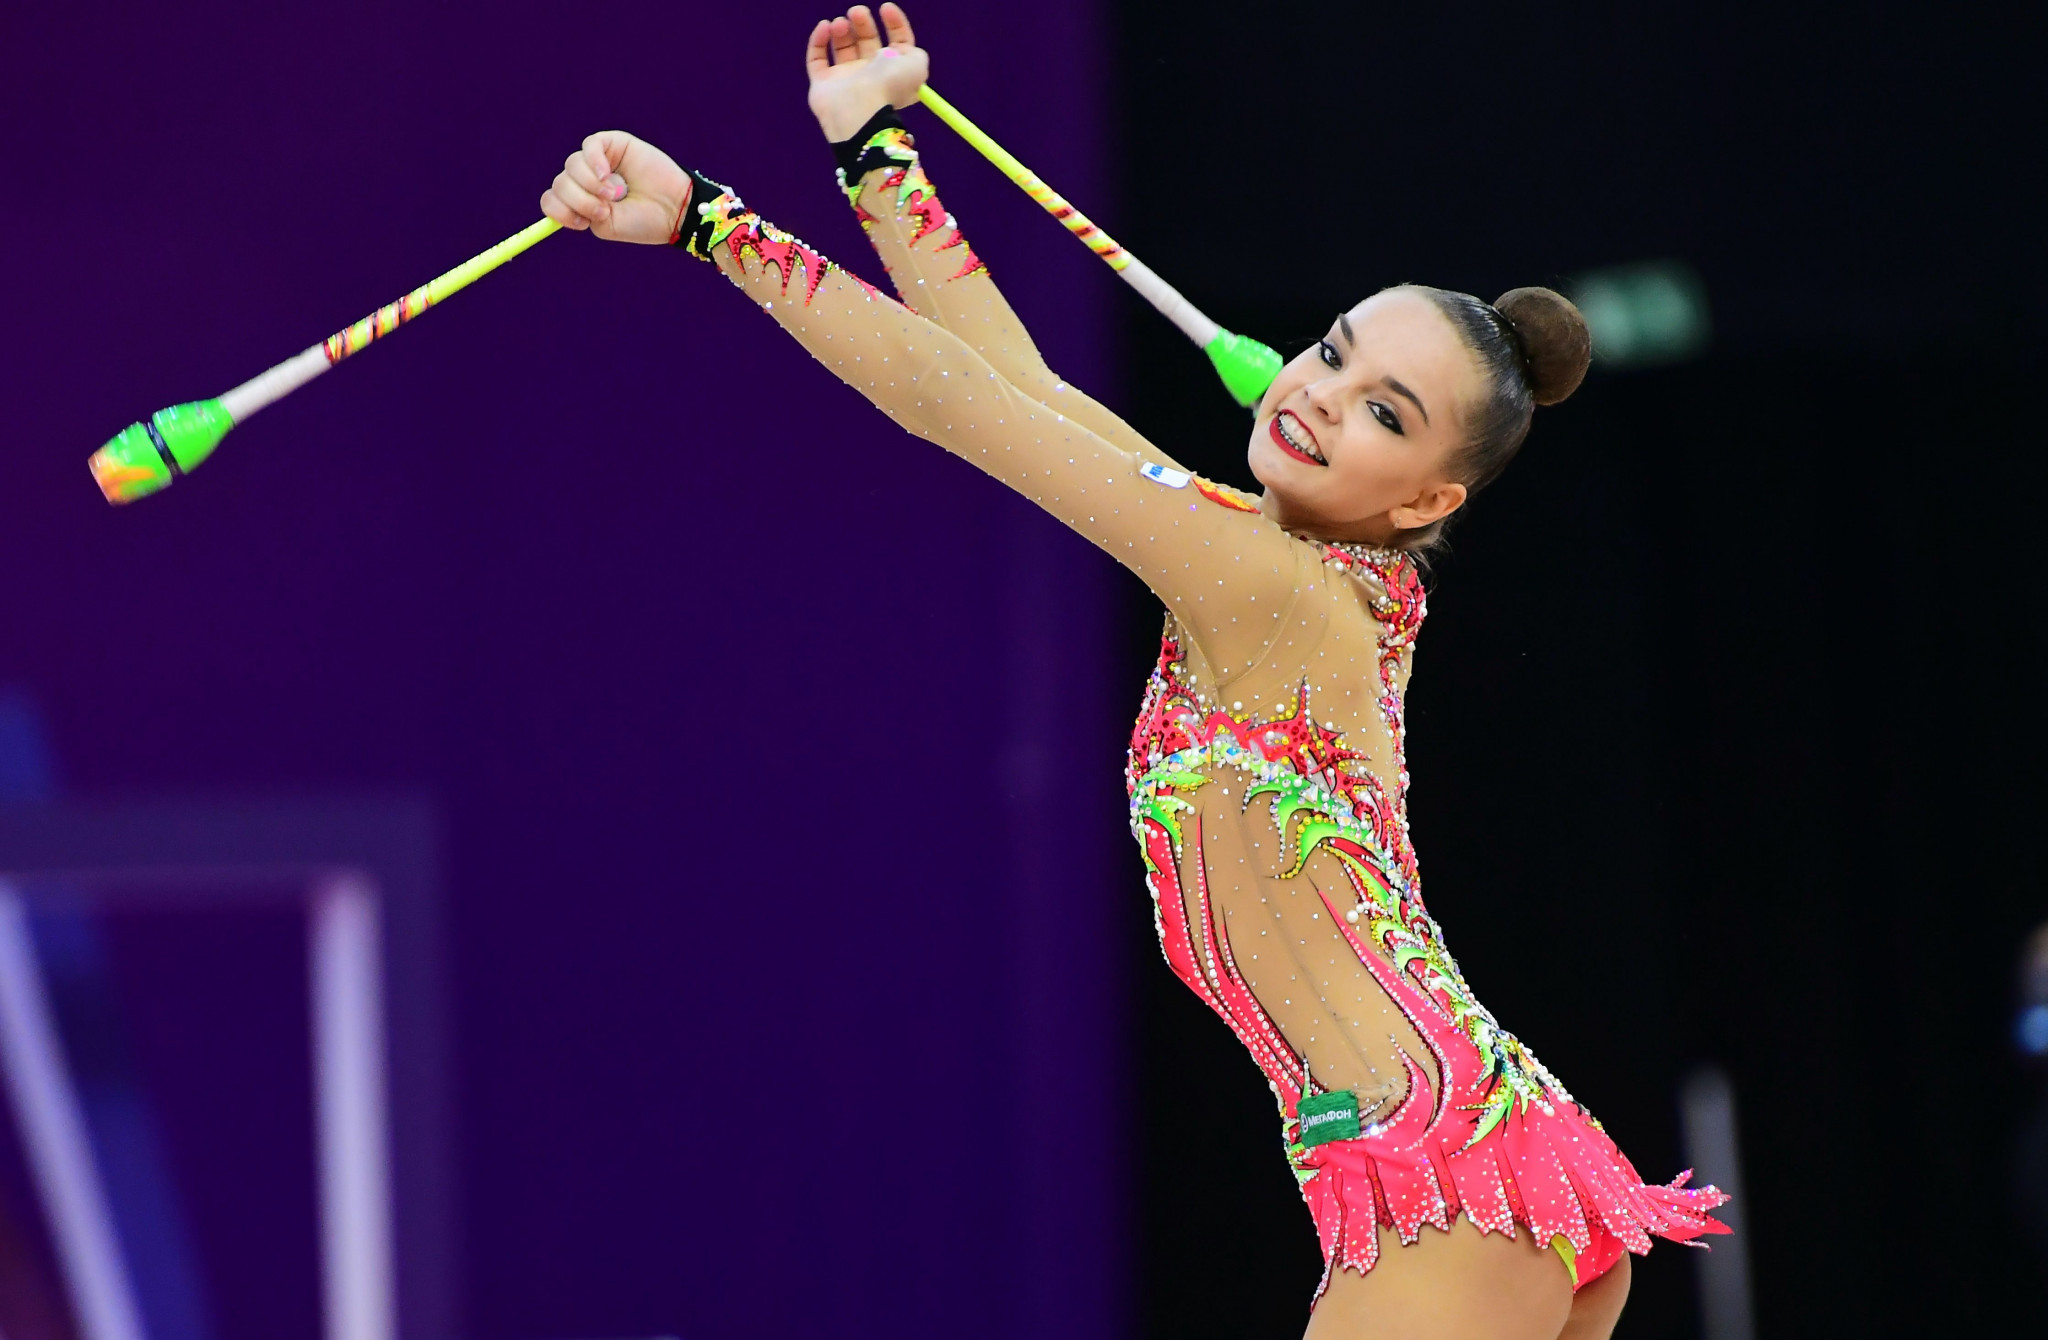 Dina Averina goes in search of more gold at Rhythmic Gymnastics World Championships